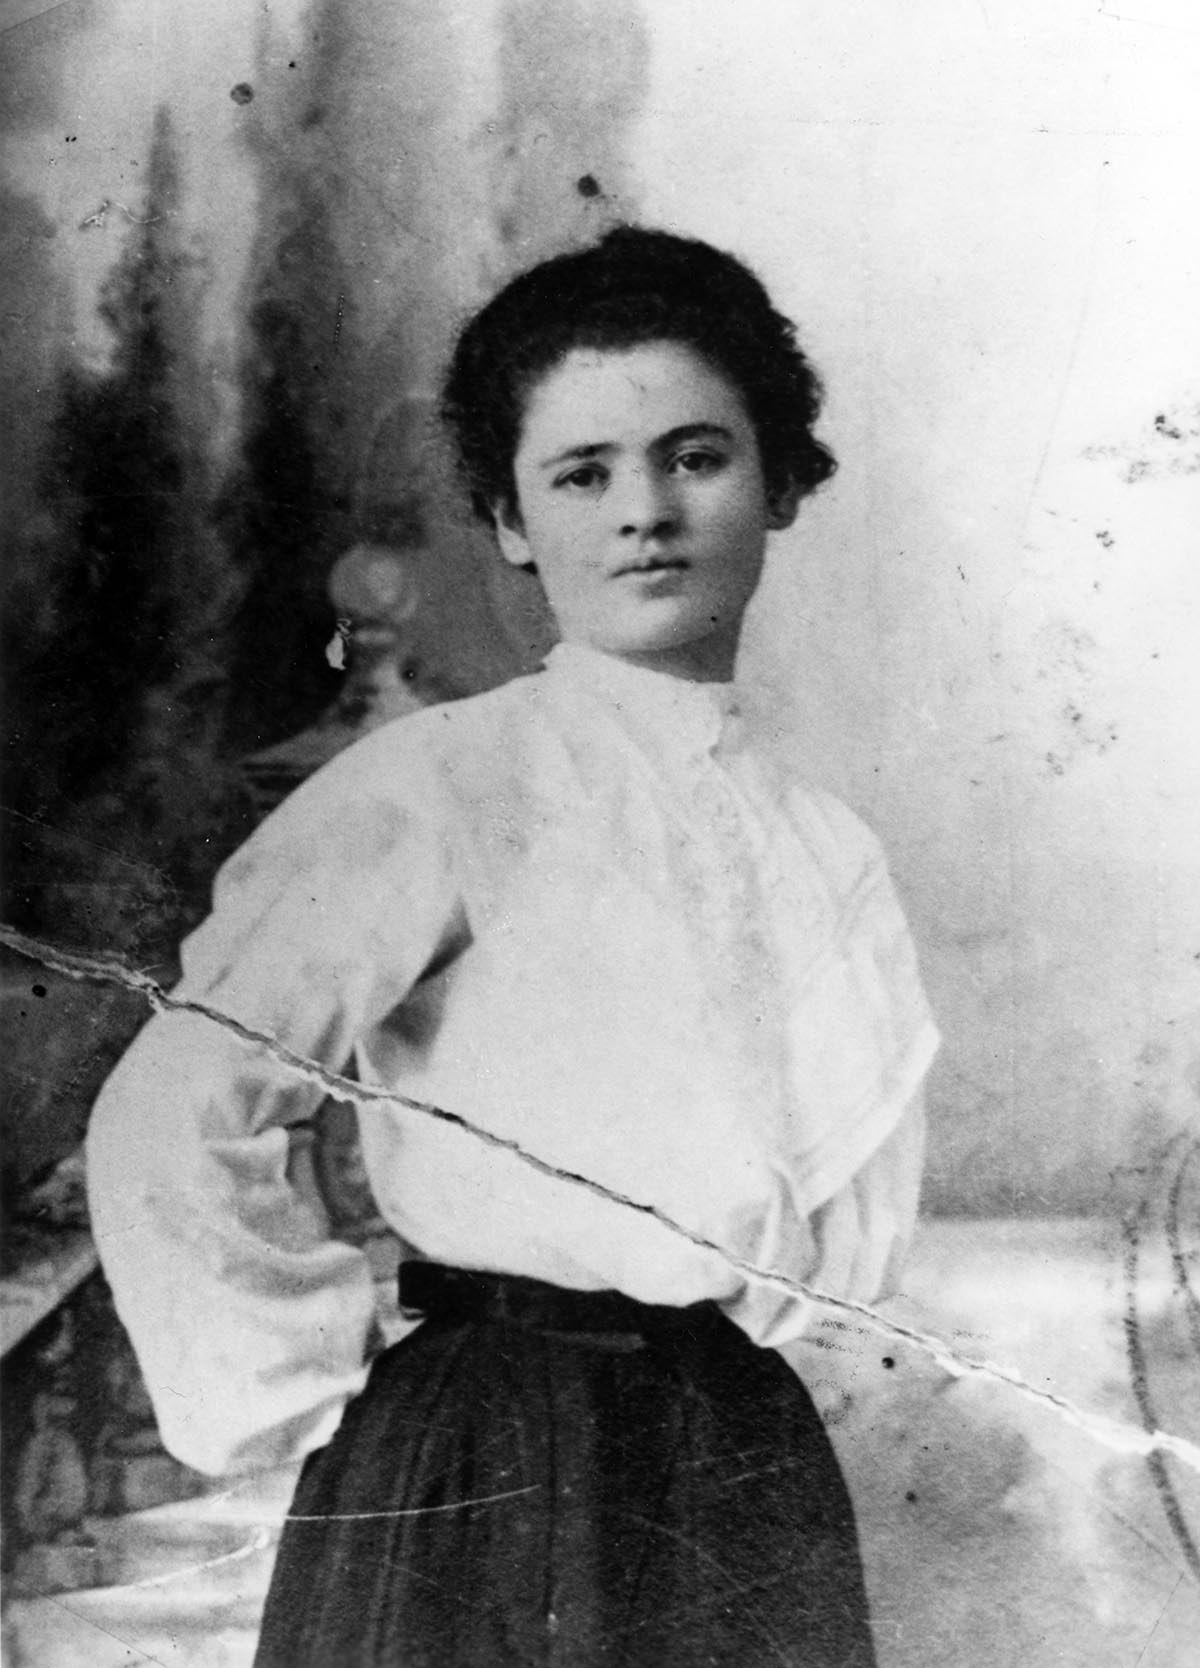 A portrait of Clara Lemlich in her mid-20s. She is standing with her hands behind her back, wearing a light colored blouse and dark colored skirt. Her hair is pulled back.